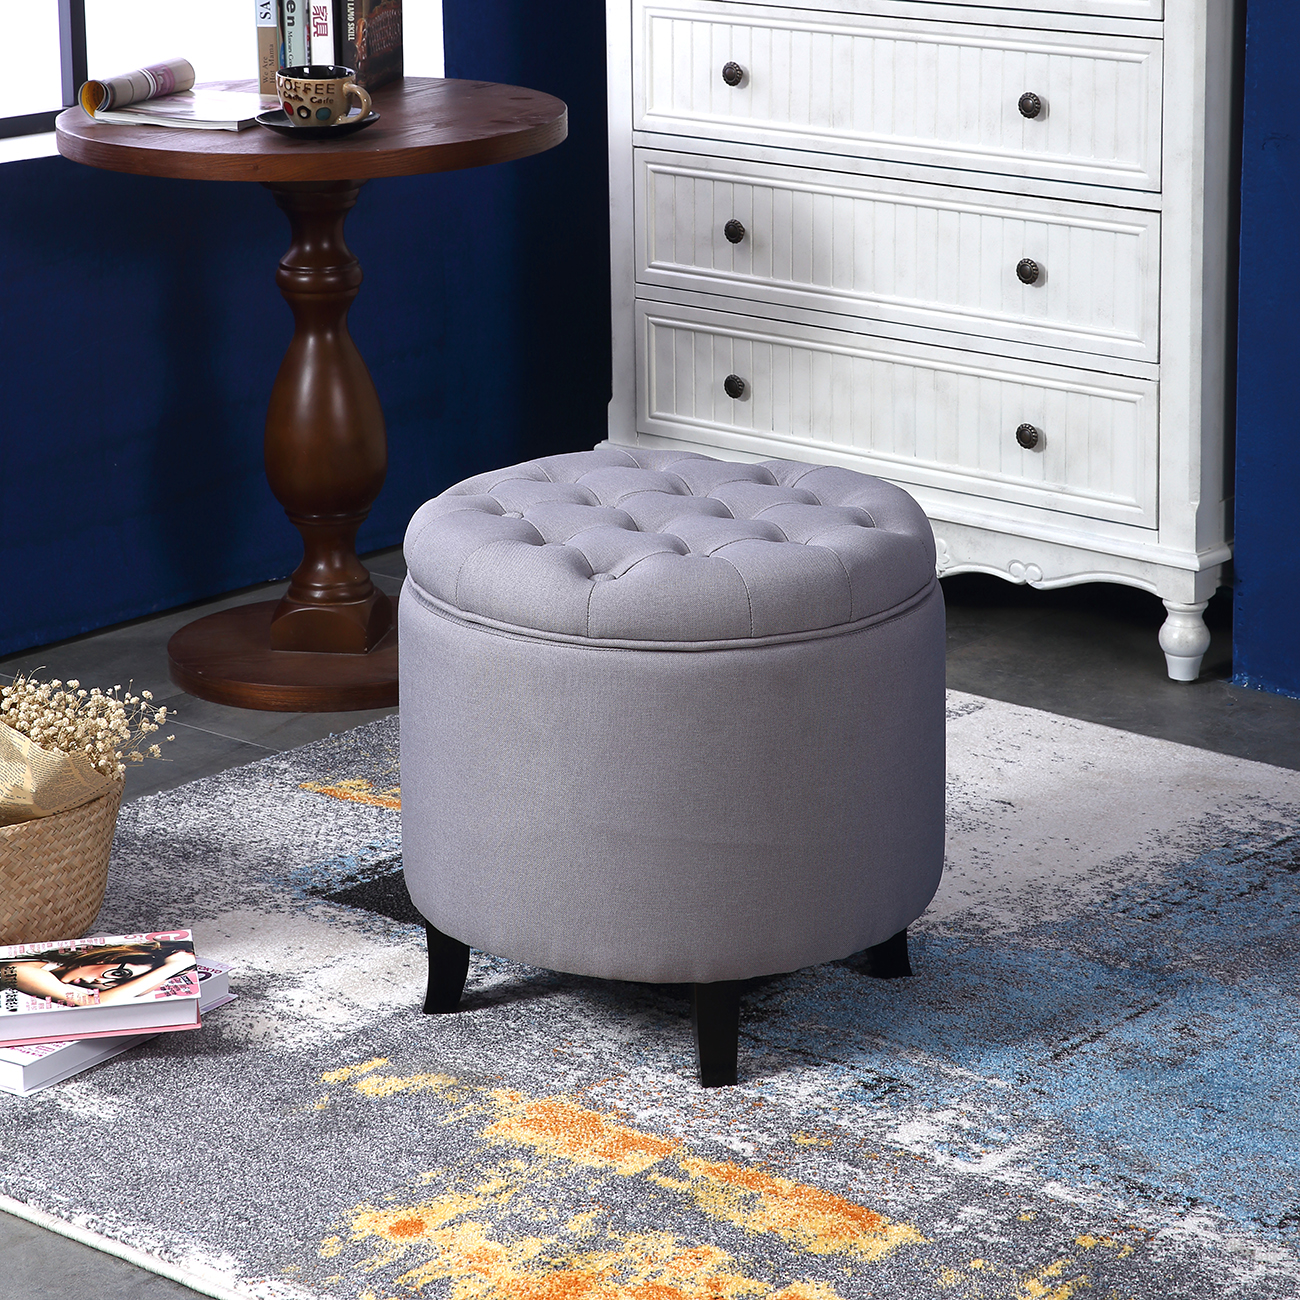 Coffee Table With Fabric: Elegant Fabric Tufted Button Ottoman Round Footstool